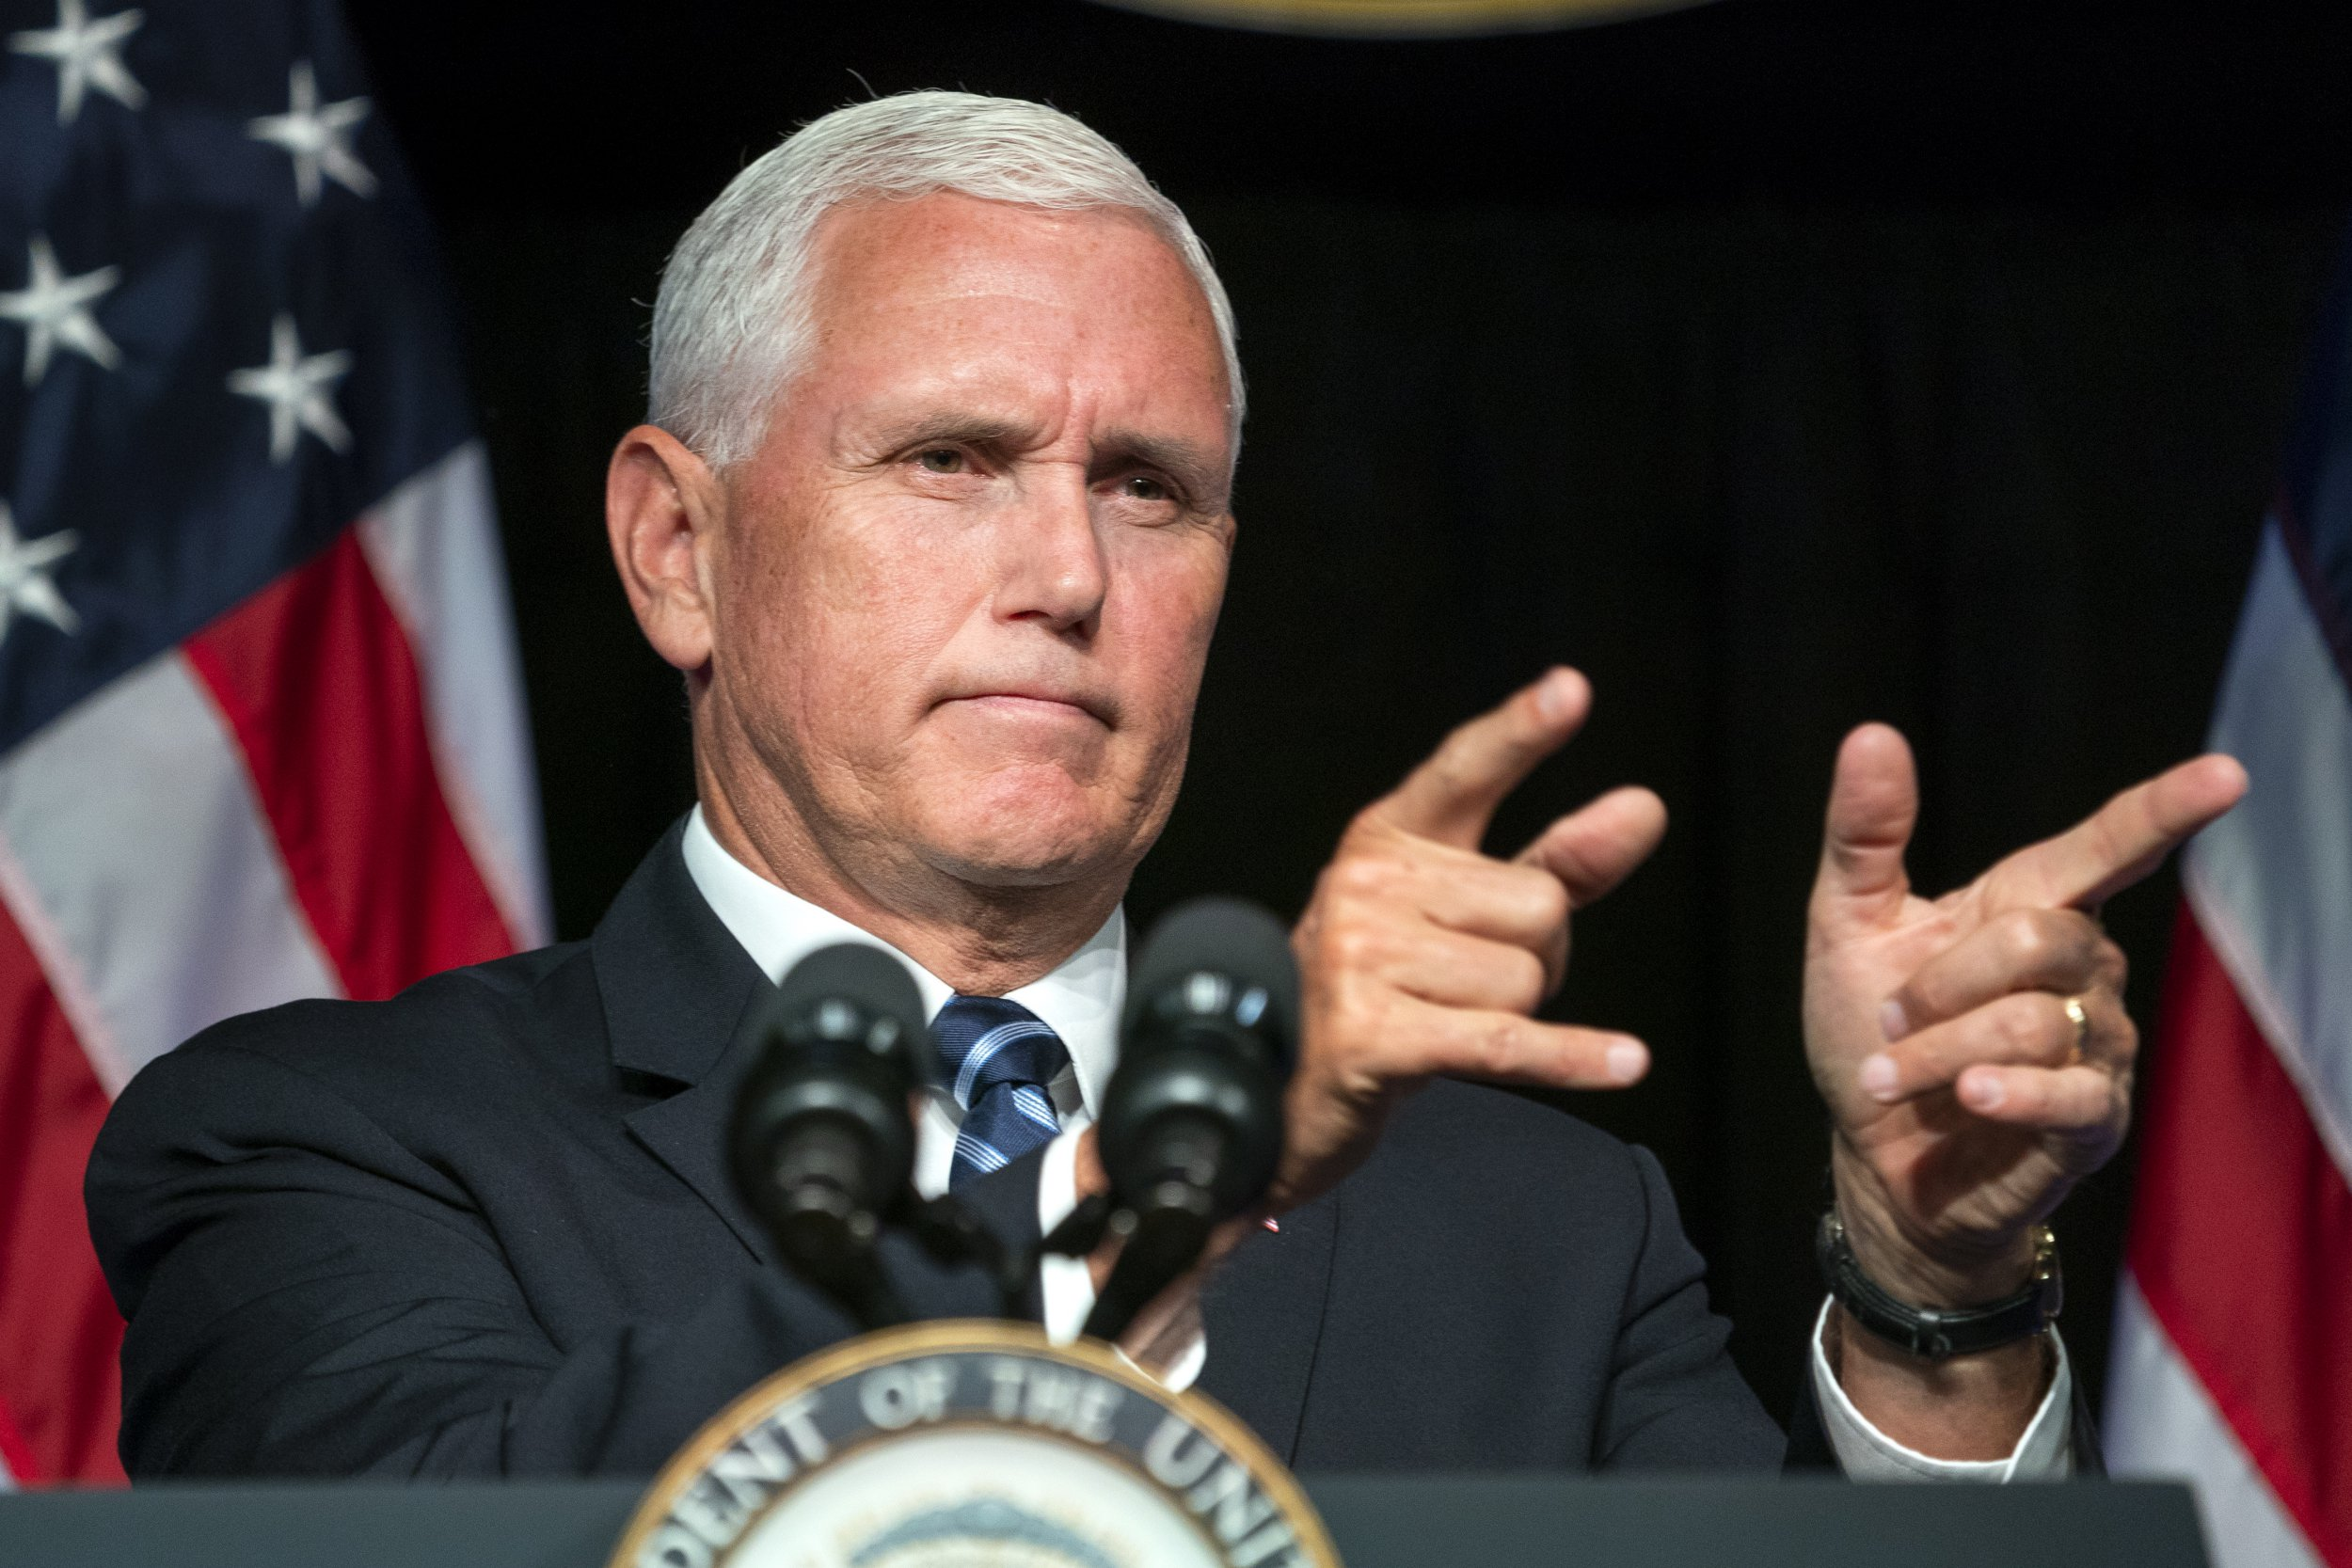 What does 'lodestar' mean and how often does Mike Pence say it?